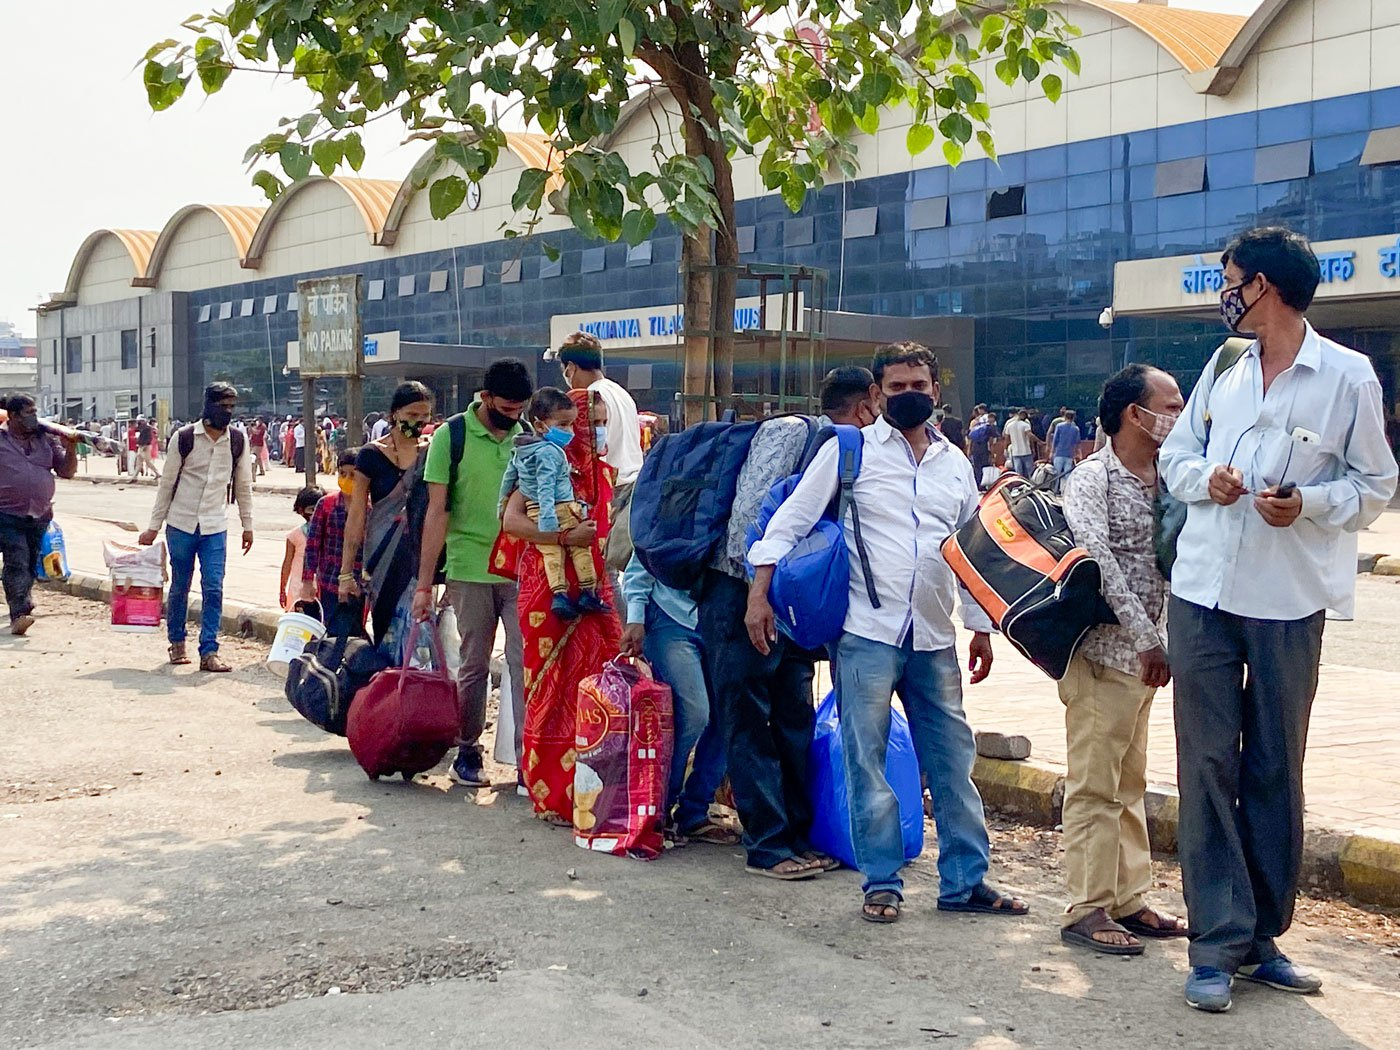 The rush at the Lokmanya Tilak Terminus and Bandra Terminus, from where several trains leave for Uttar Pradesh and Bihar, began a few days before the state government's renewed restrictions were expected to be rolled out